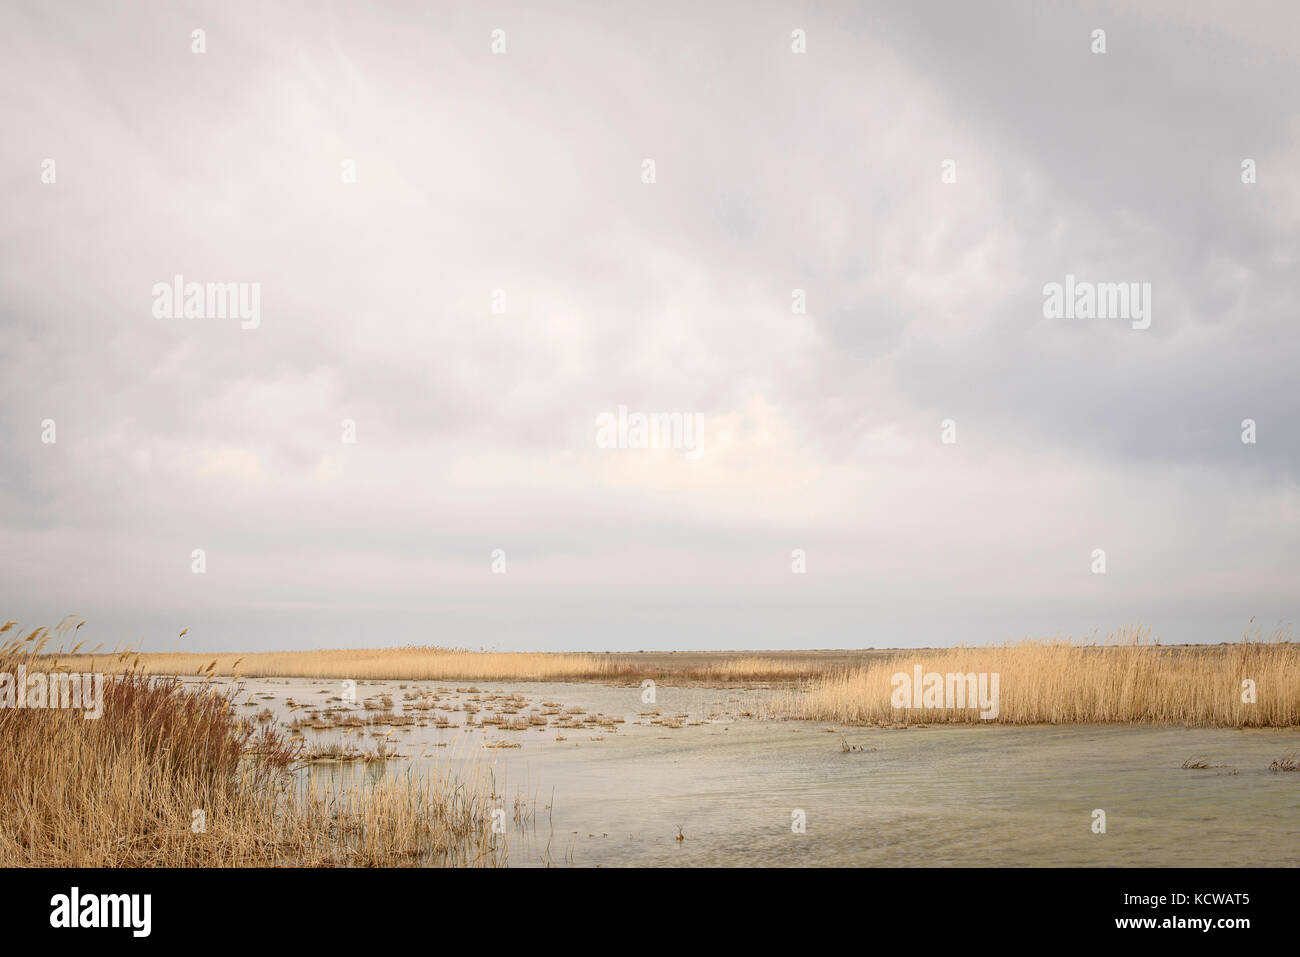 At 20 km from Aralsk, we can see ponds, we feel like at the sea border. The sea, which was once over 80km away in Stock Photo